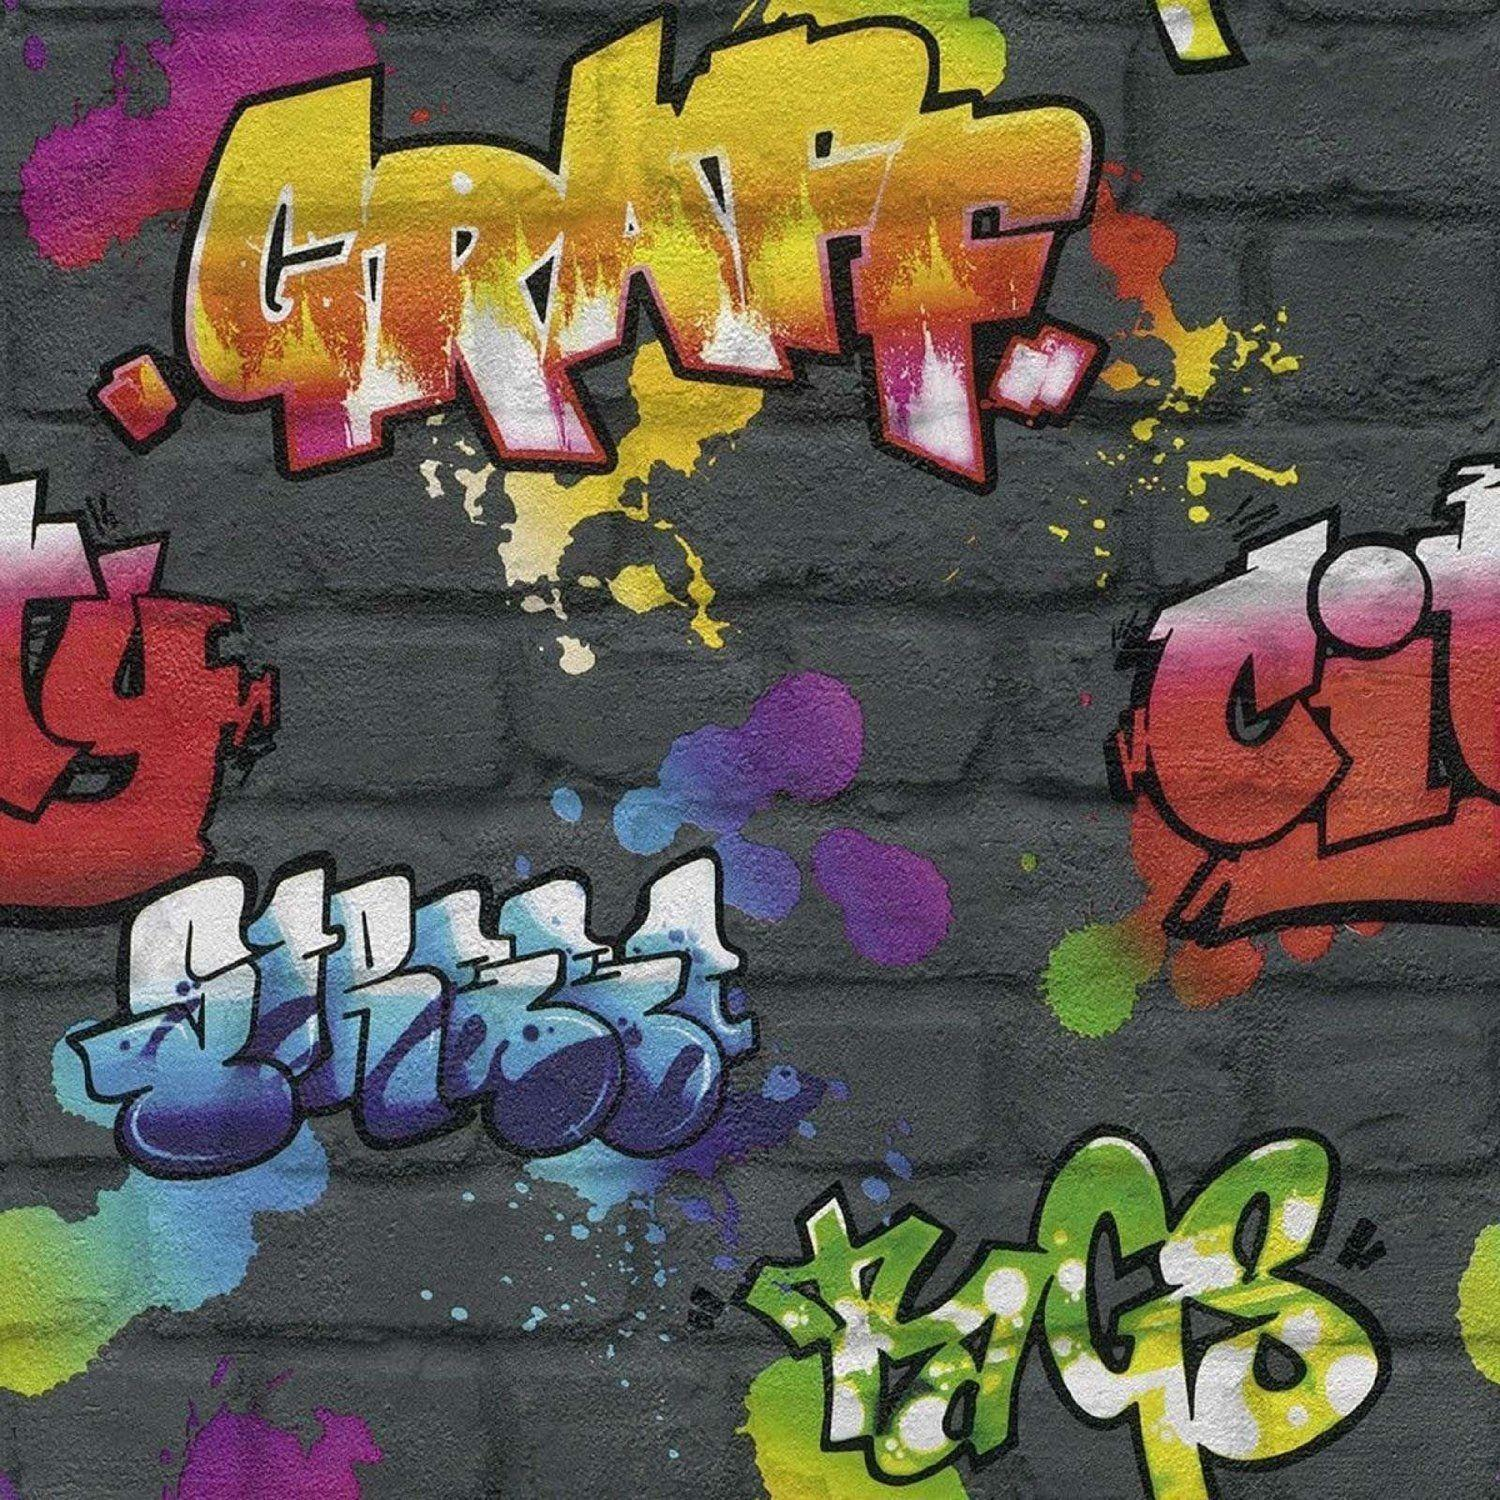 Black graffiti brick wall effect feature teenage kids wallpaper 237801 rasch new 1 of 3only 1 available